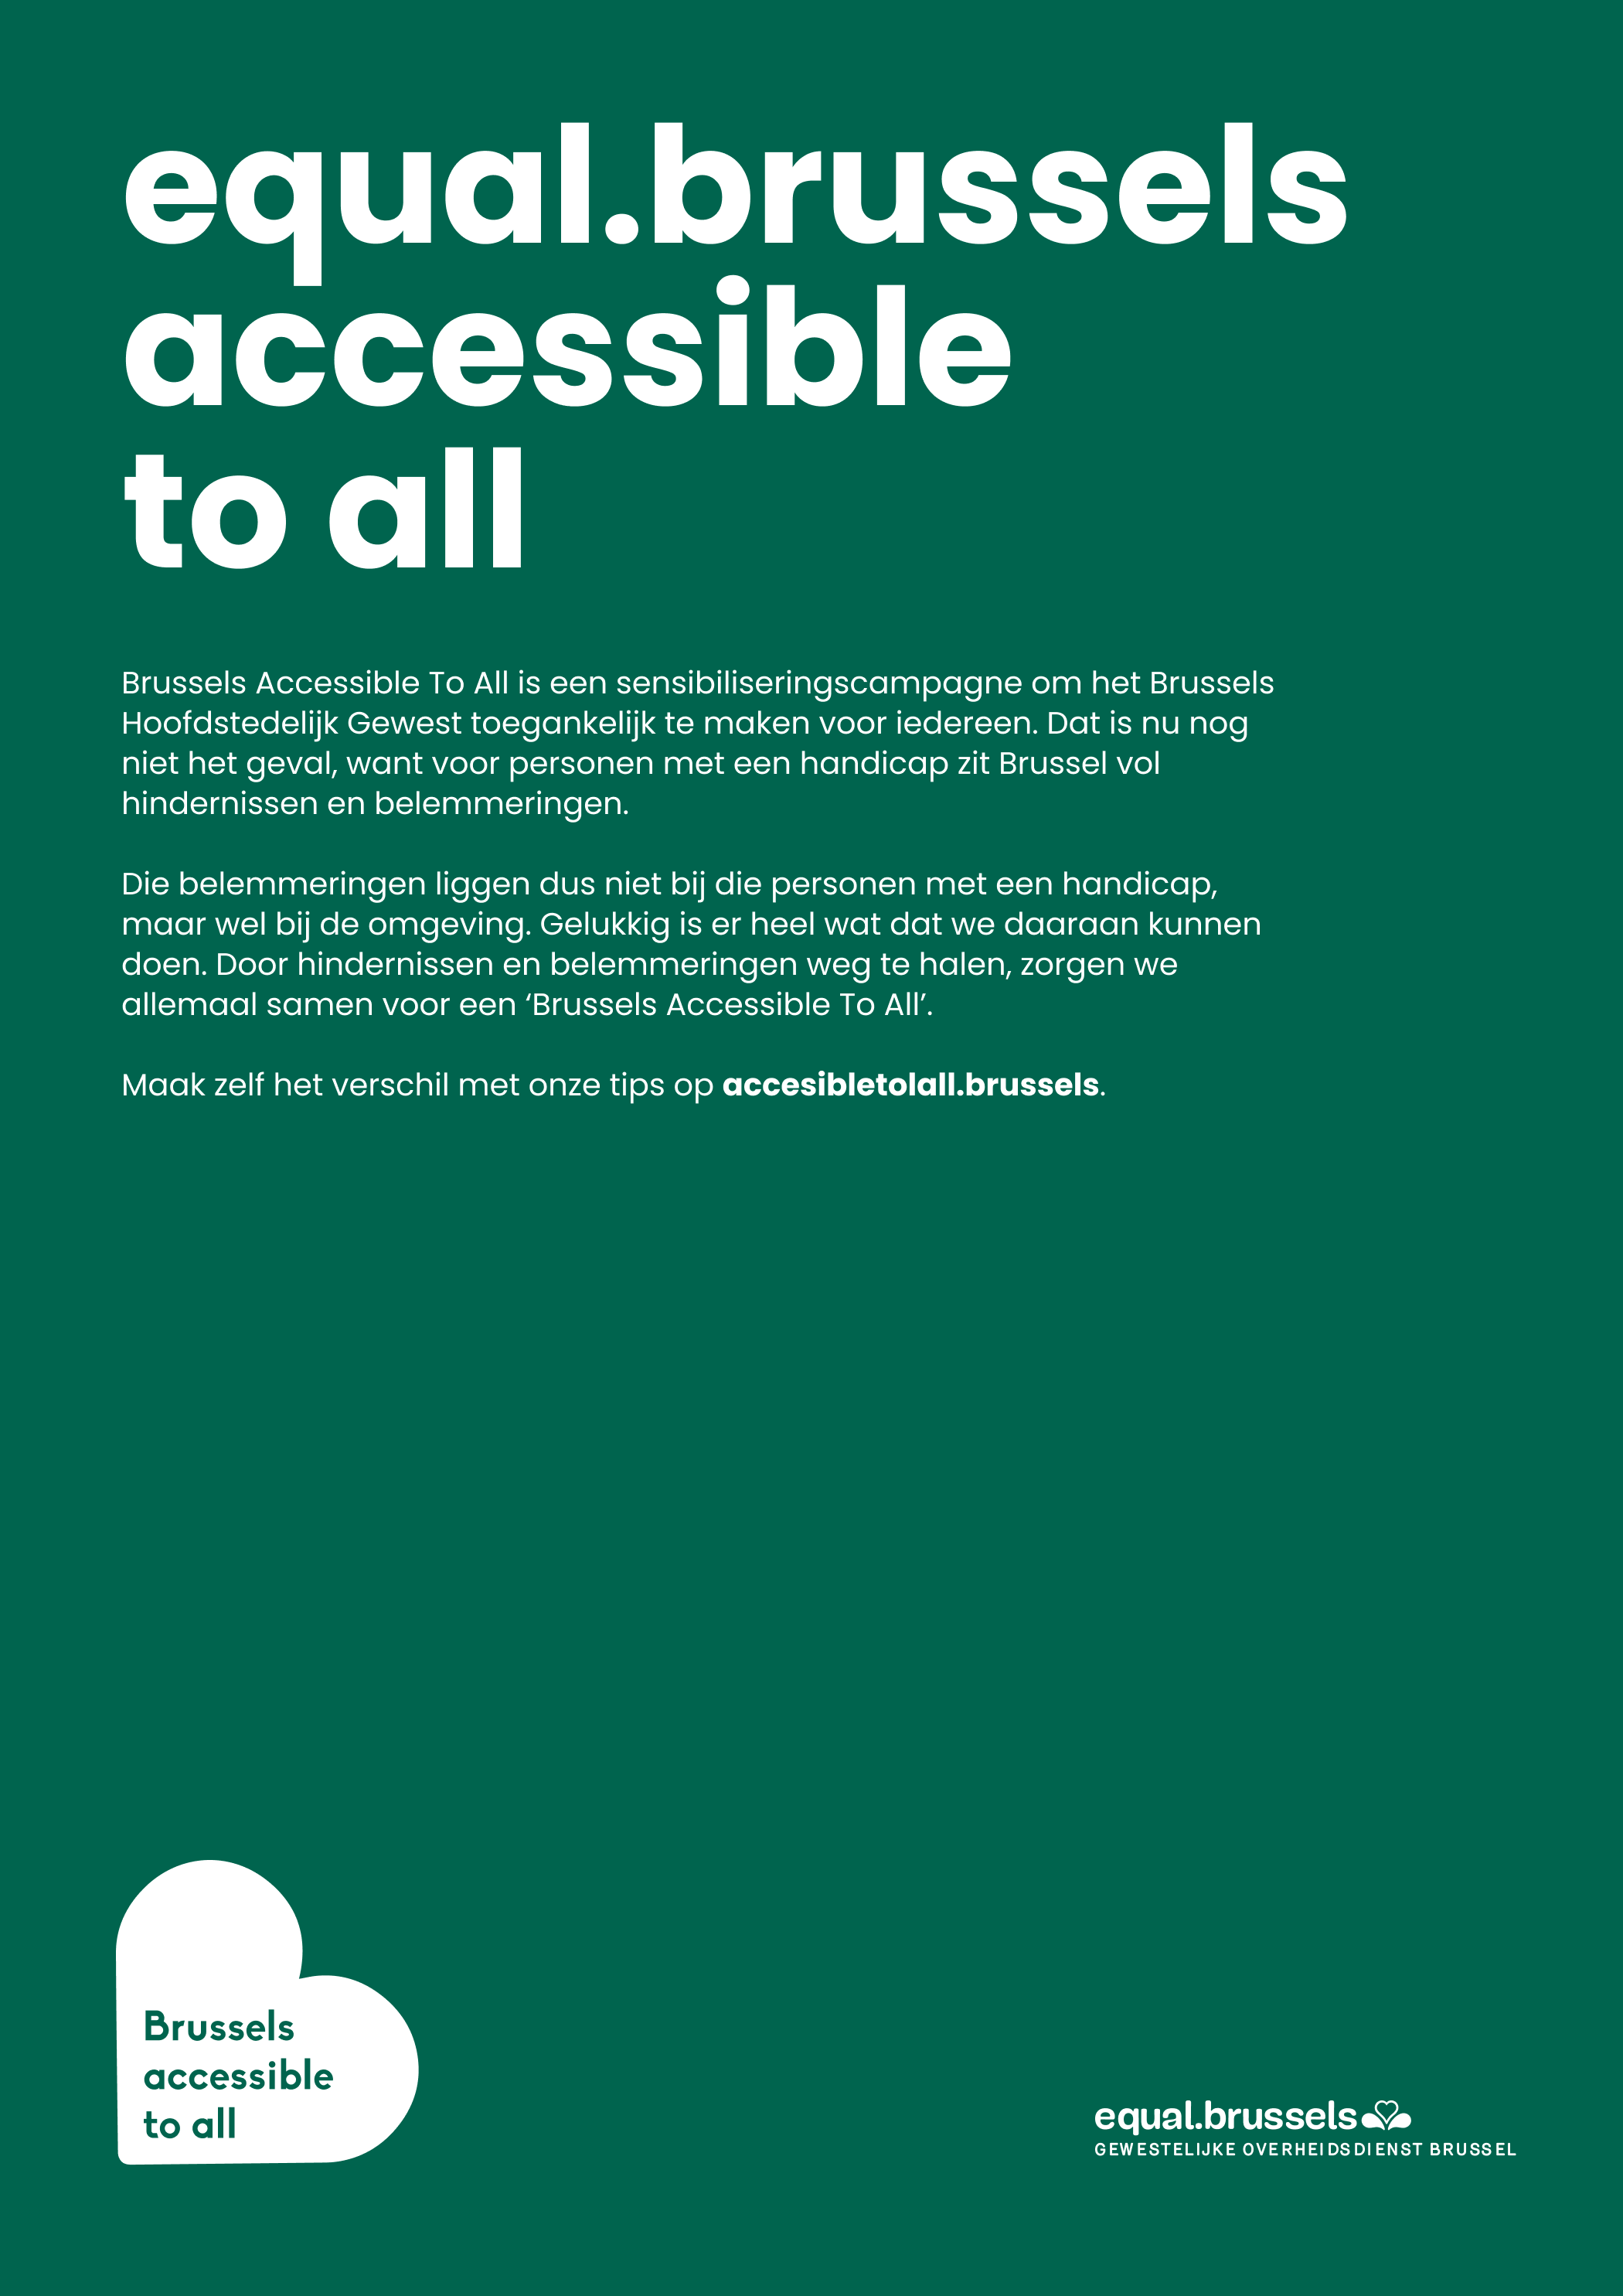 Brussels accesible to all poster